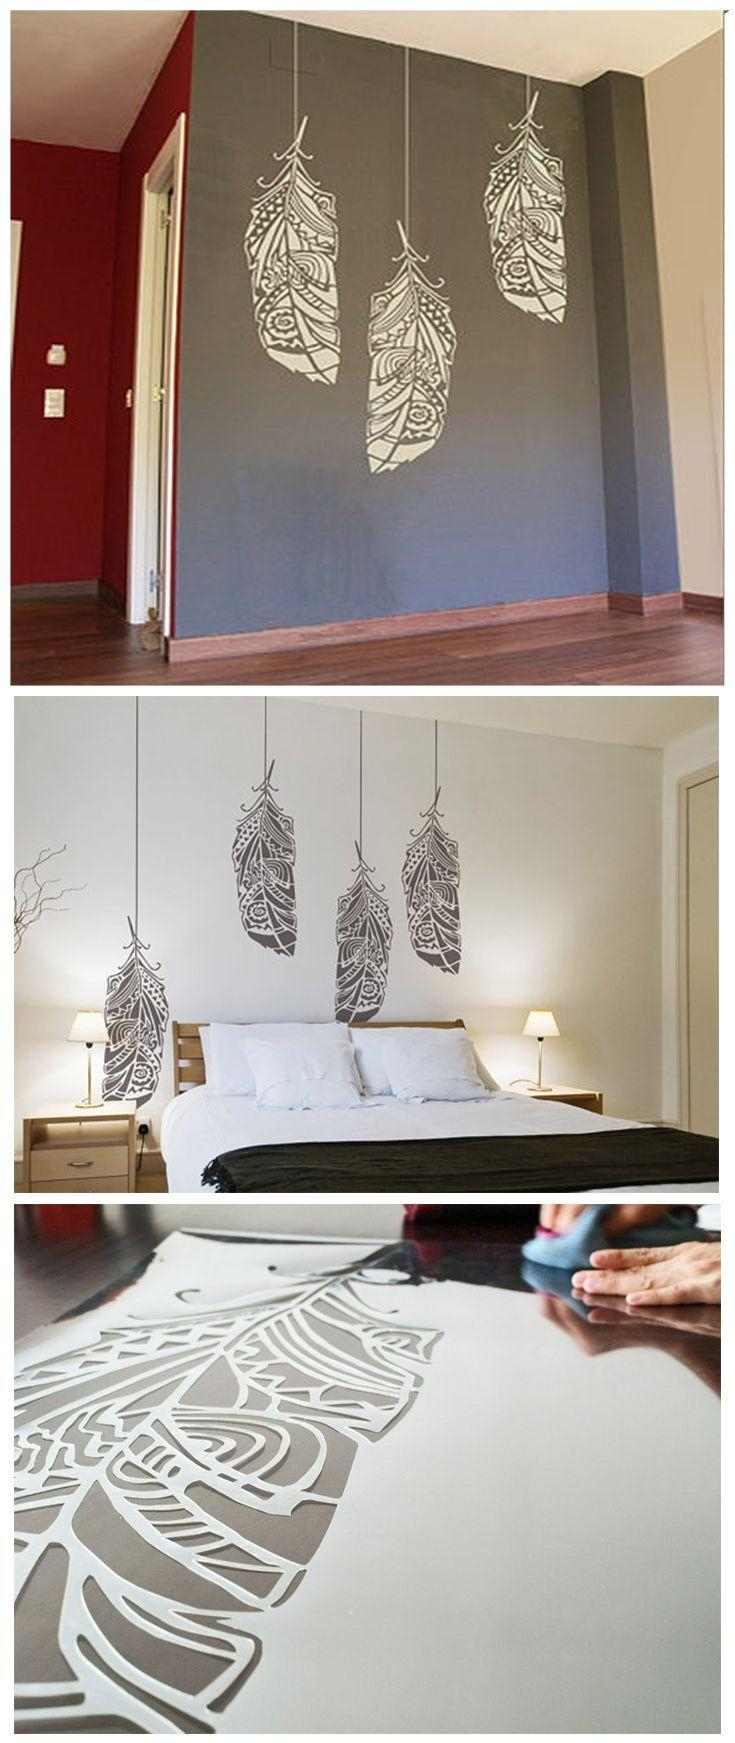 12 Awesome Wall Décor Ideas To Make Up Your Home | Ethnic Decor With Stencil Wall Art (View 7 of 20)